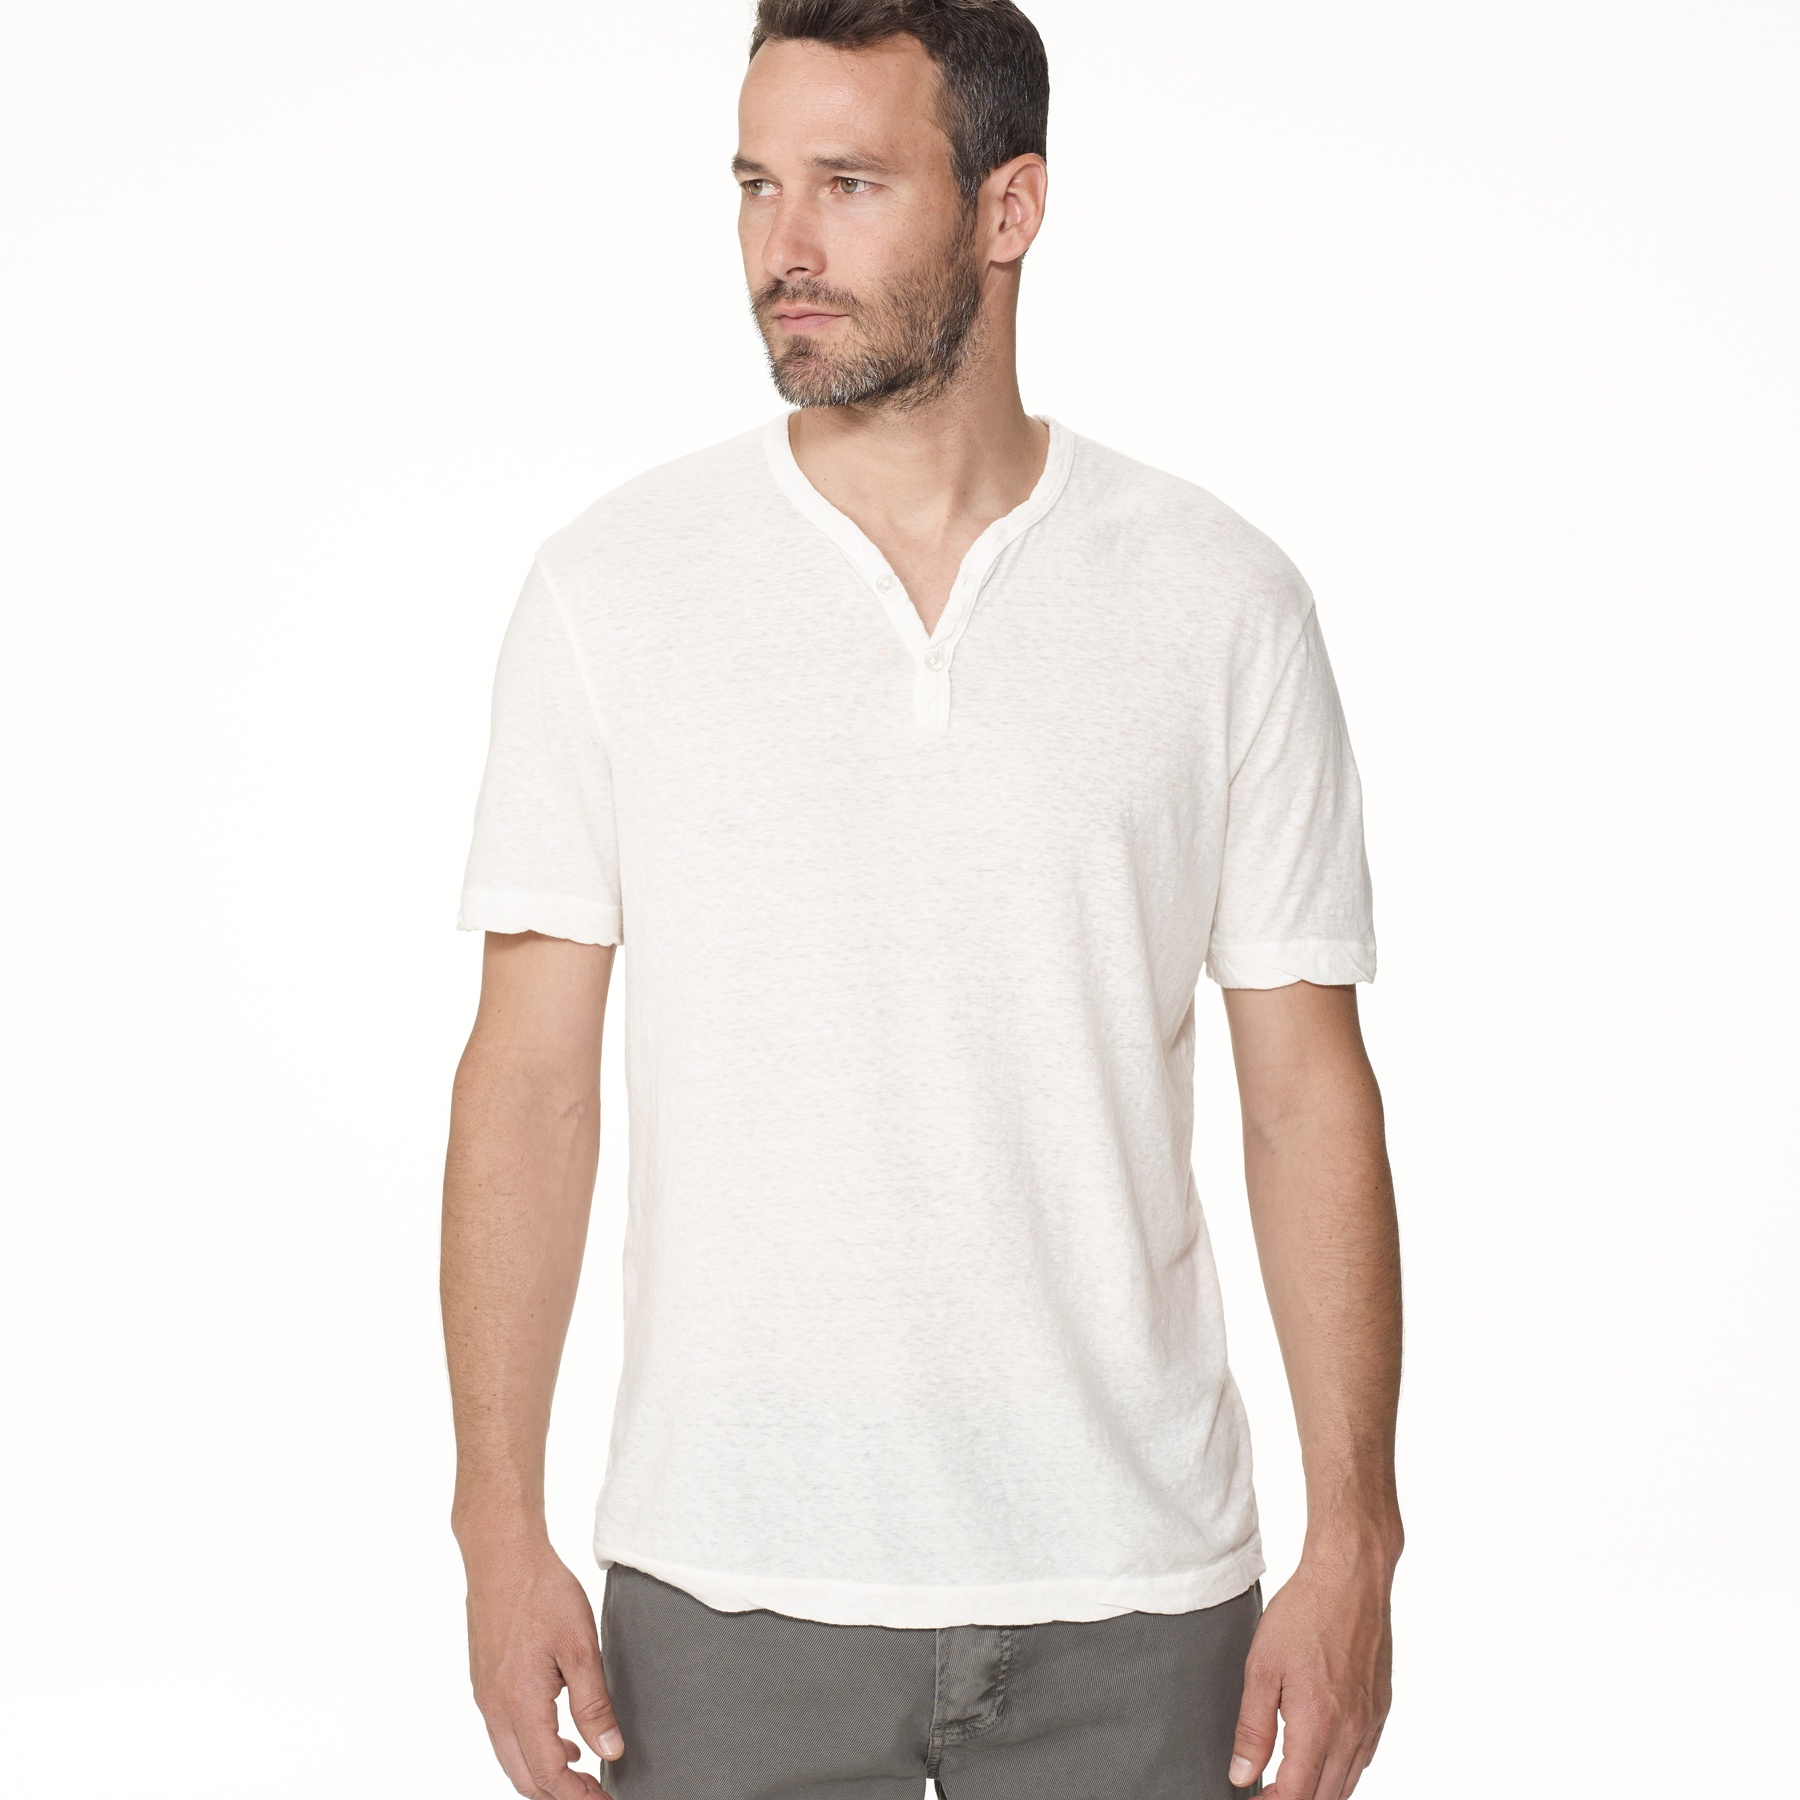 James perse revival jersey v neck henley in white for men for James perse henley shirt